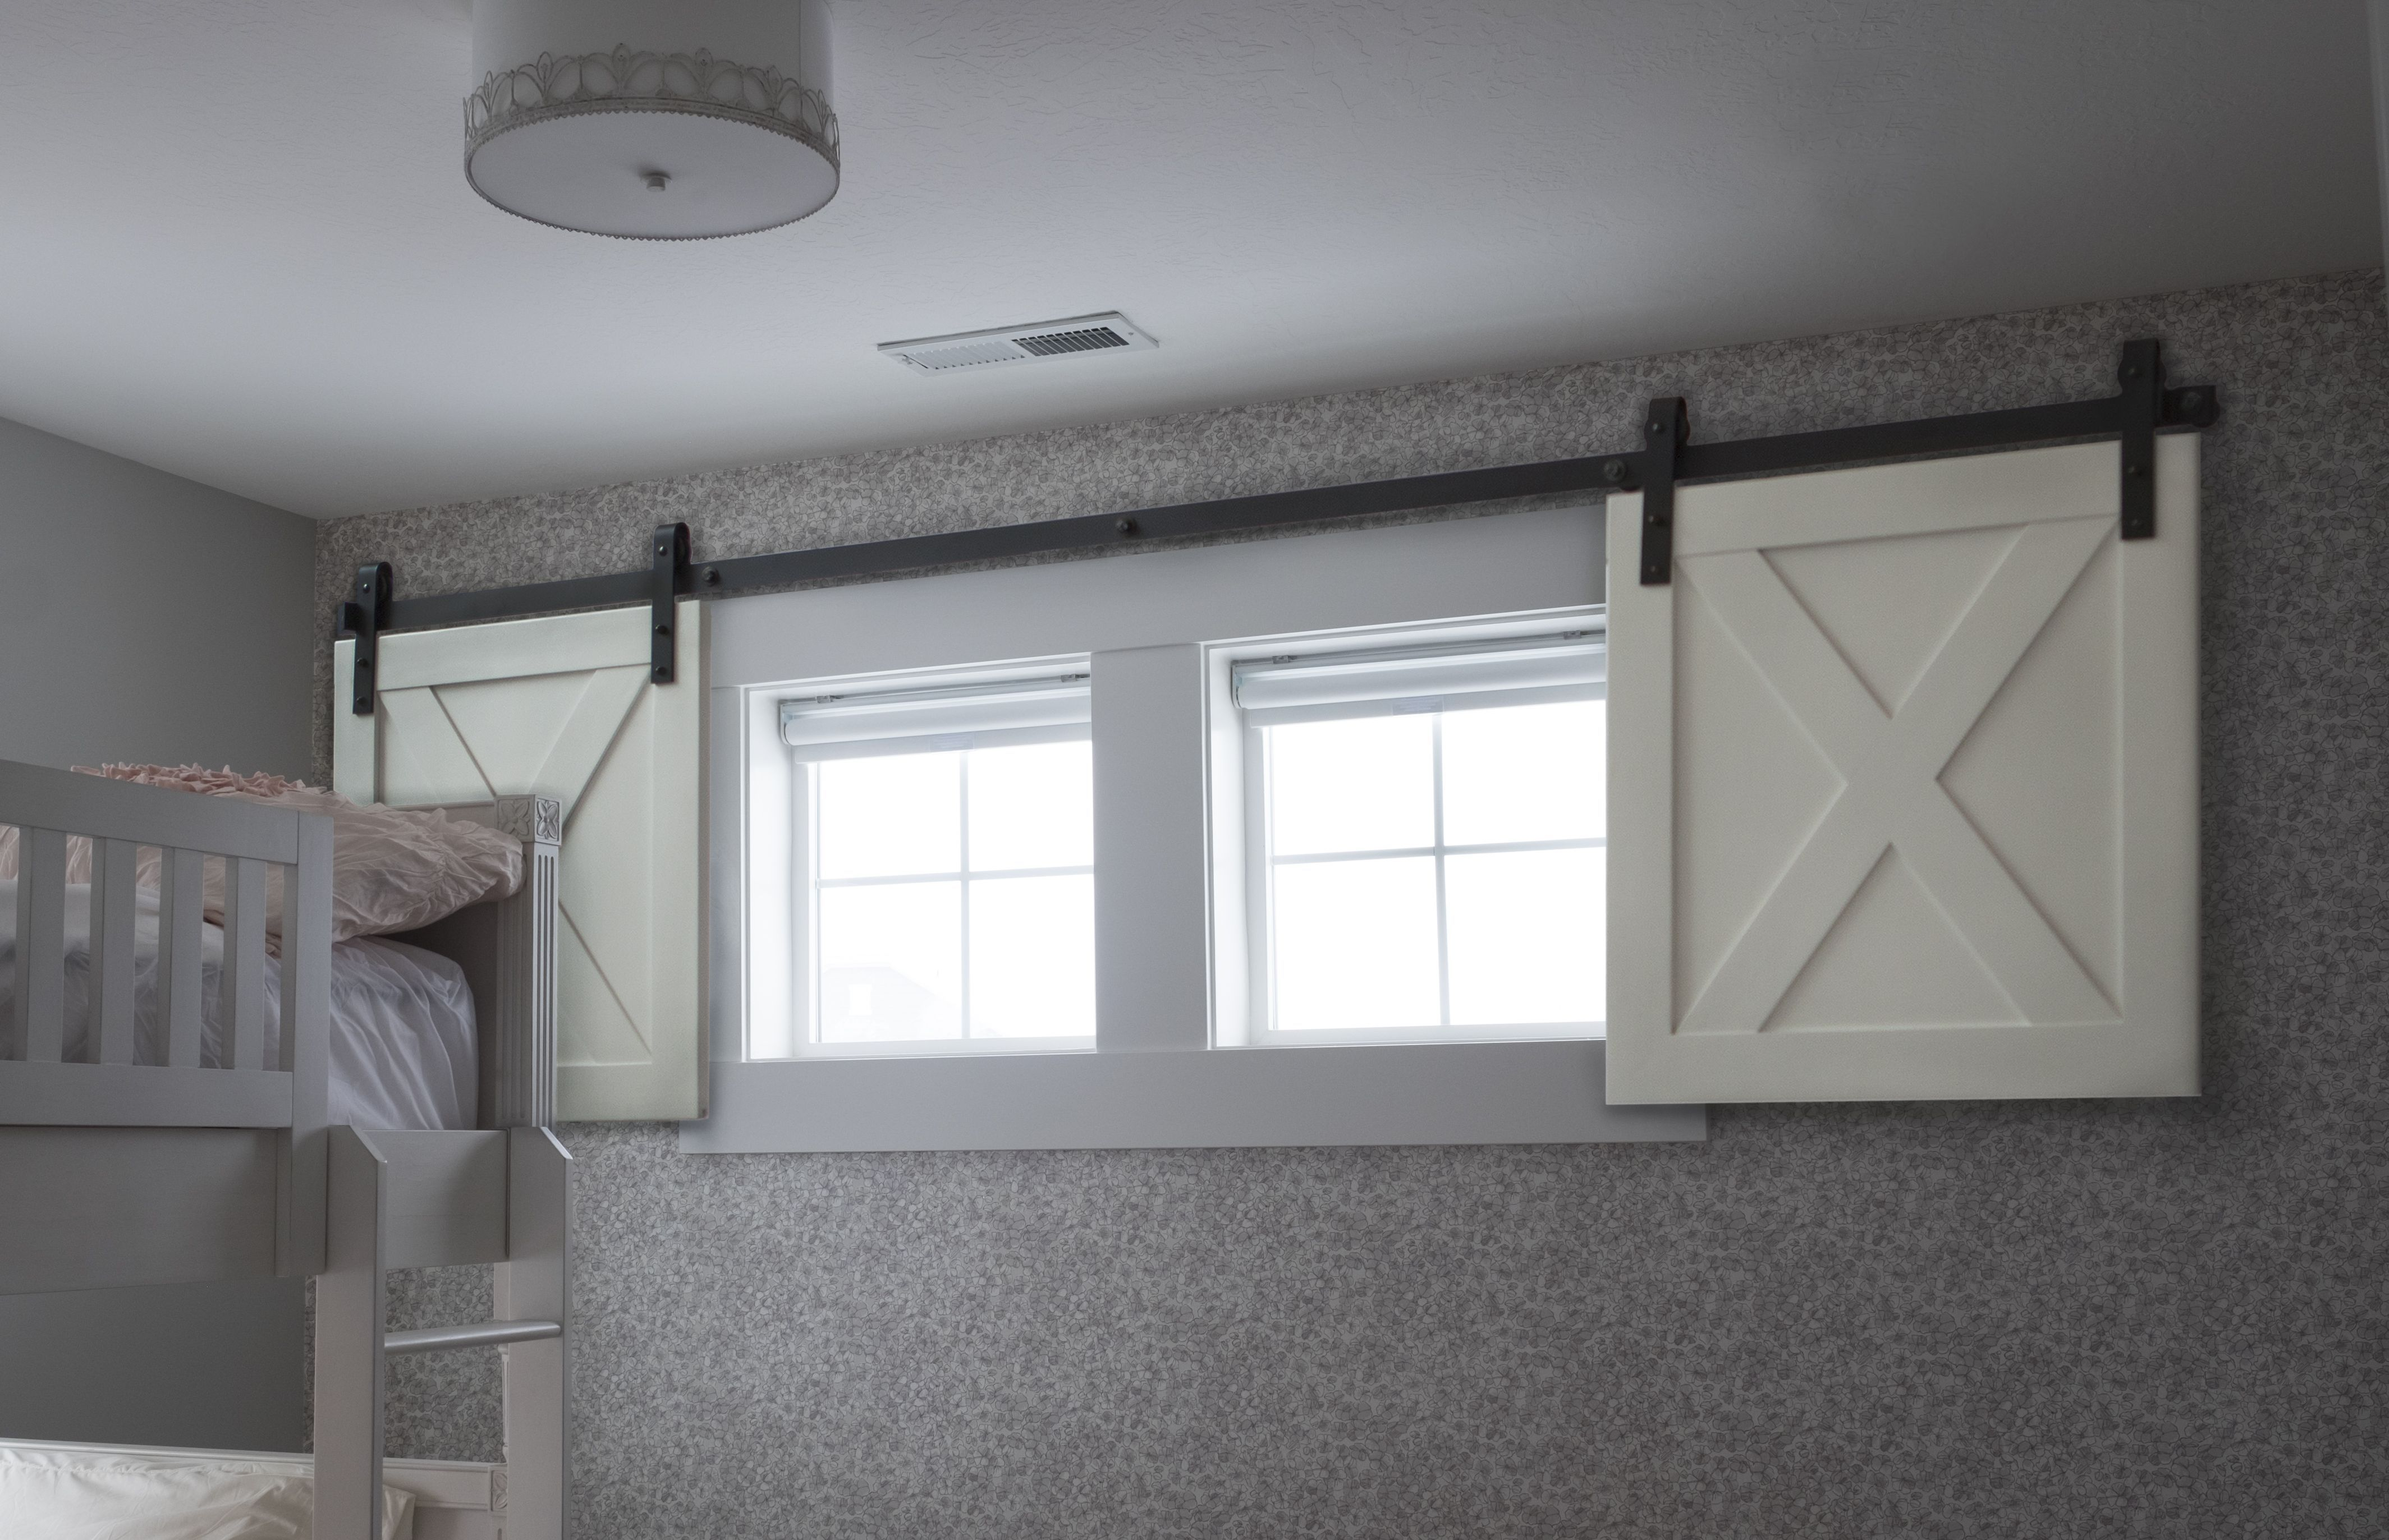 Creative Designs Of Basement Window Covers For Your Diy Project